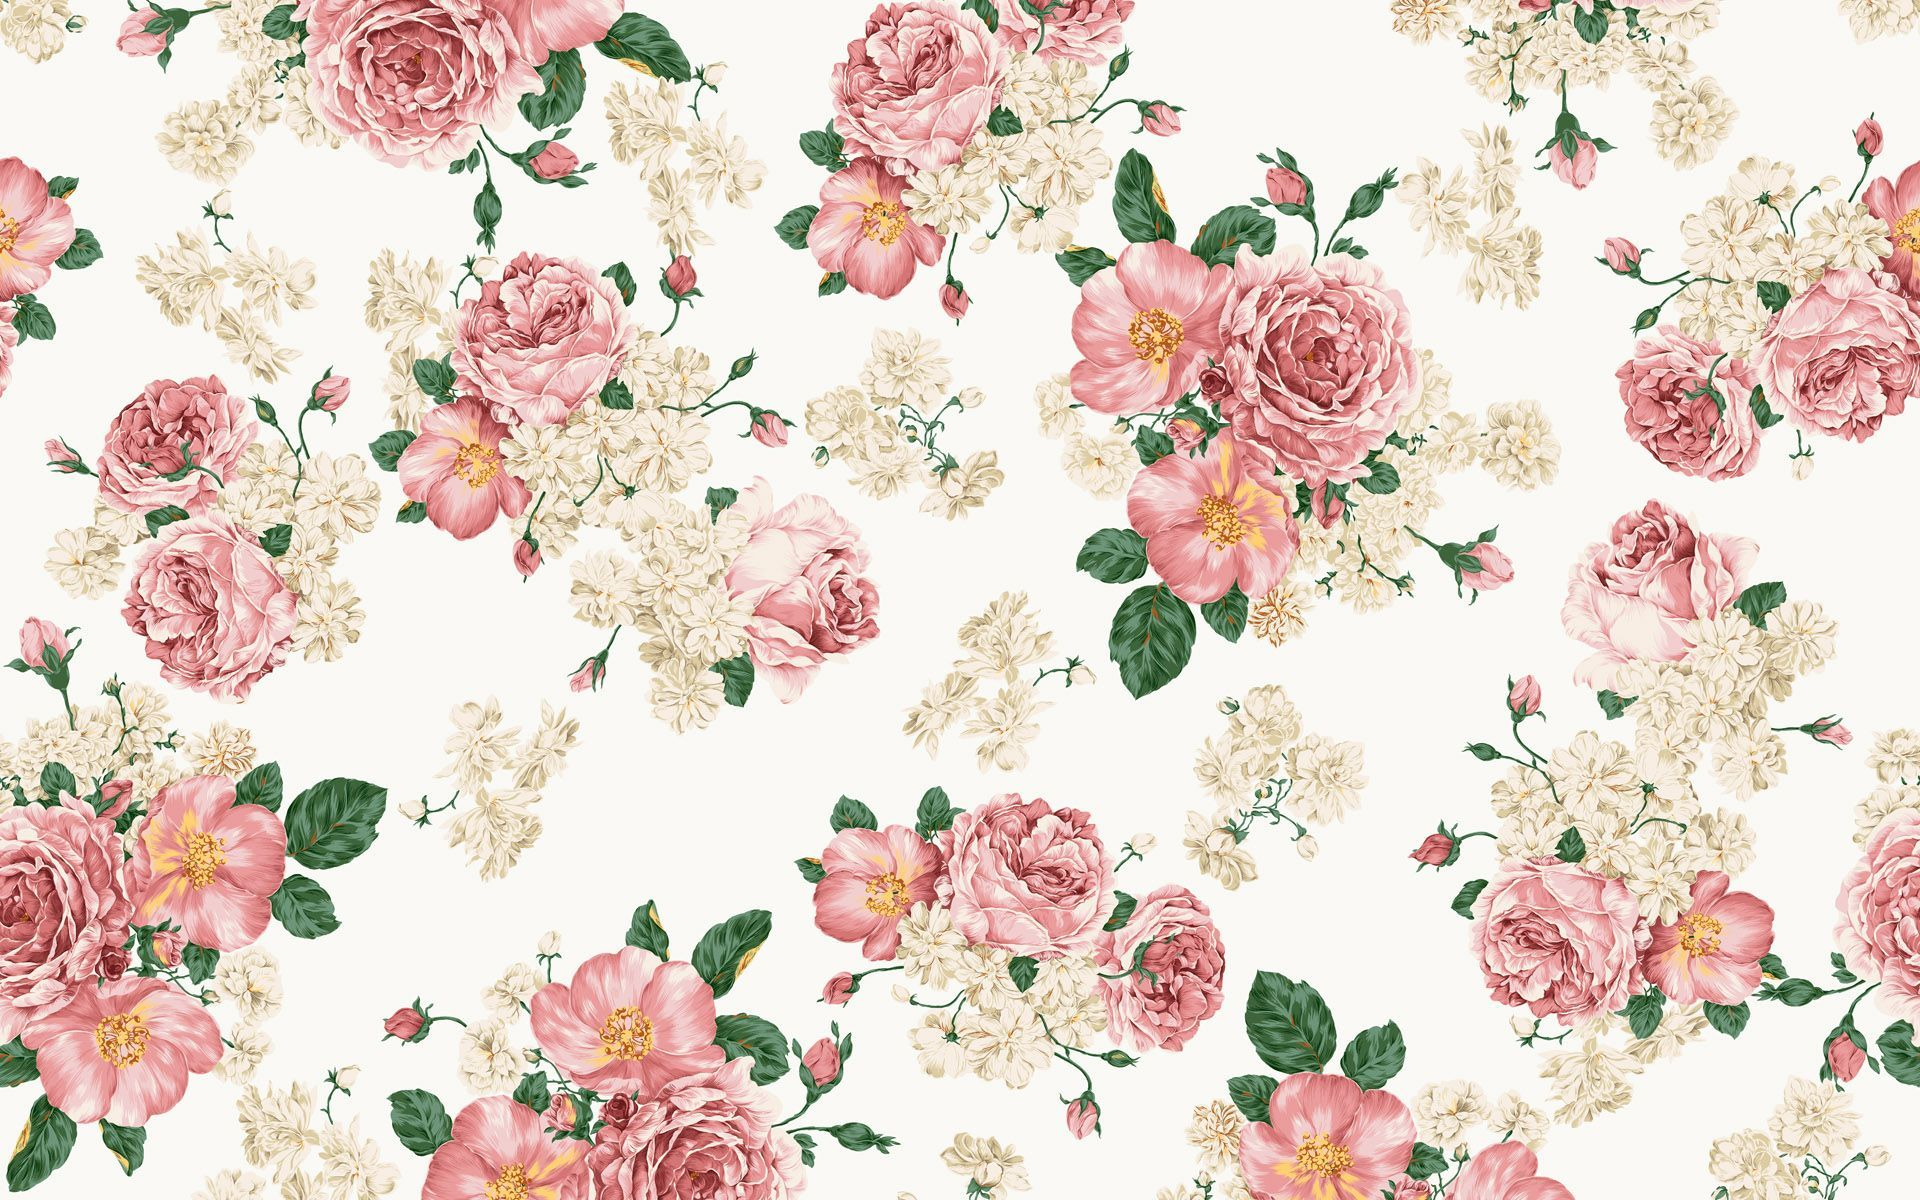 1920x1200 Flower Pattern Design Wallpaper High Resolution with HD Desktop ...